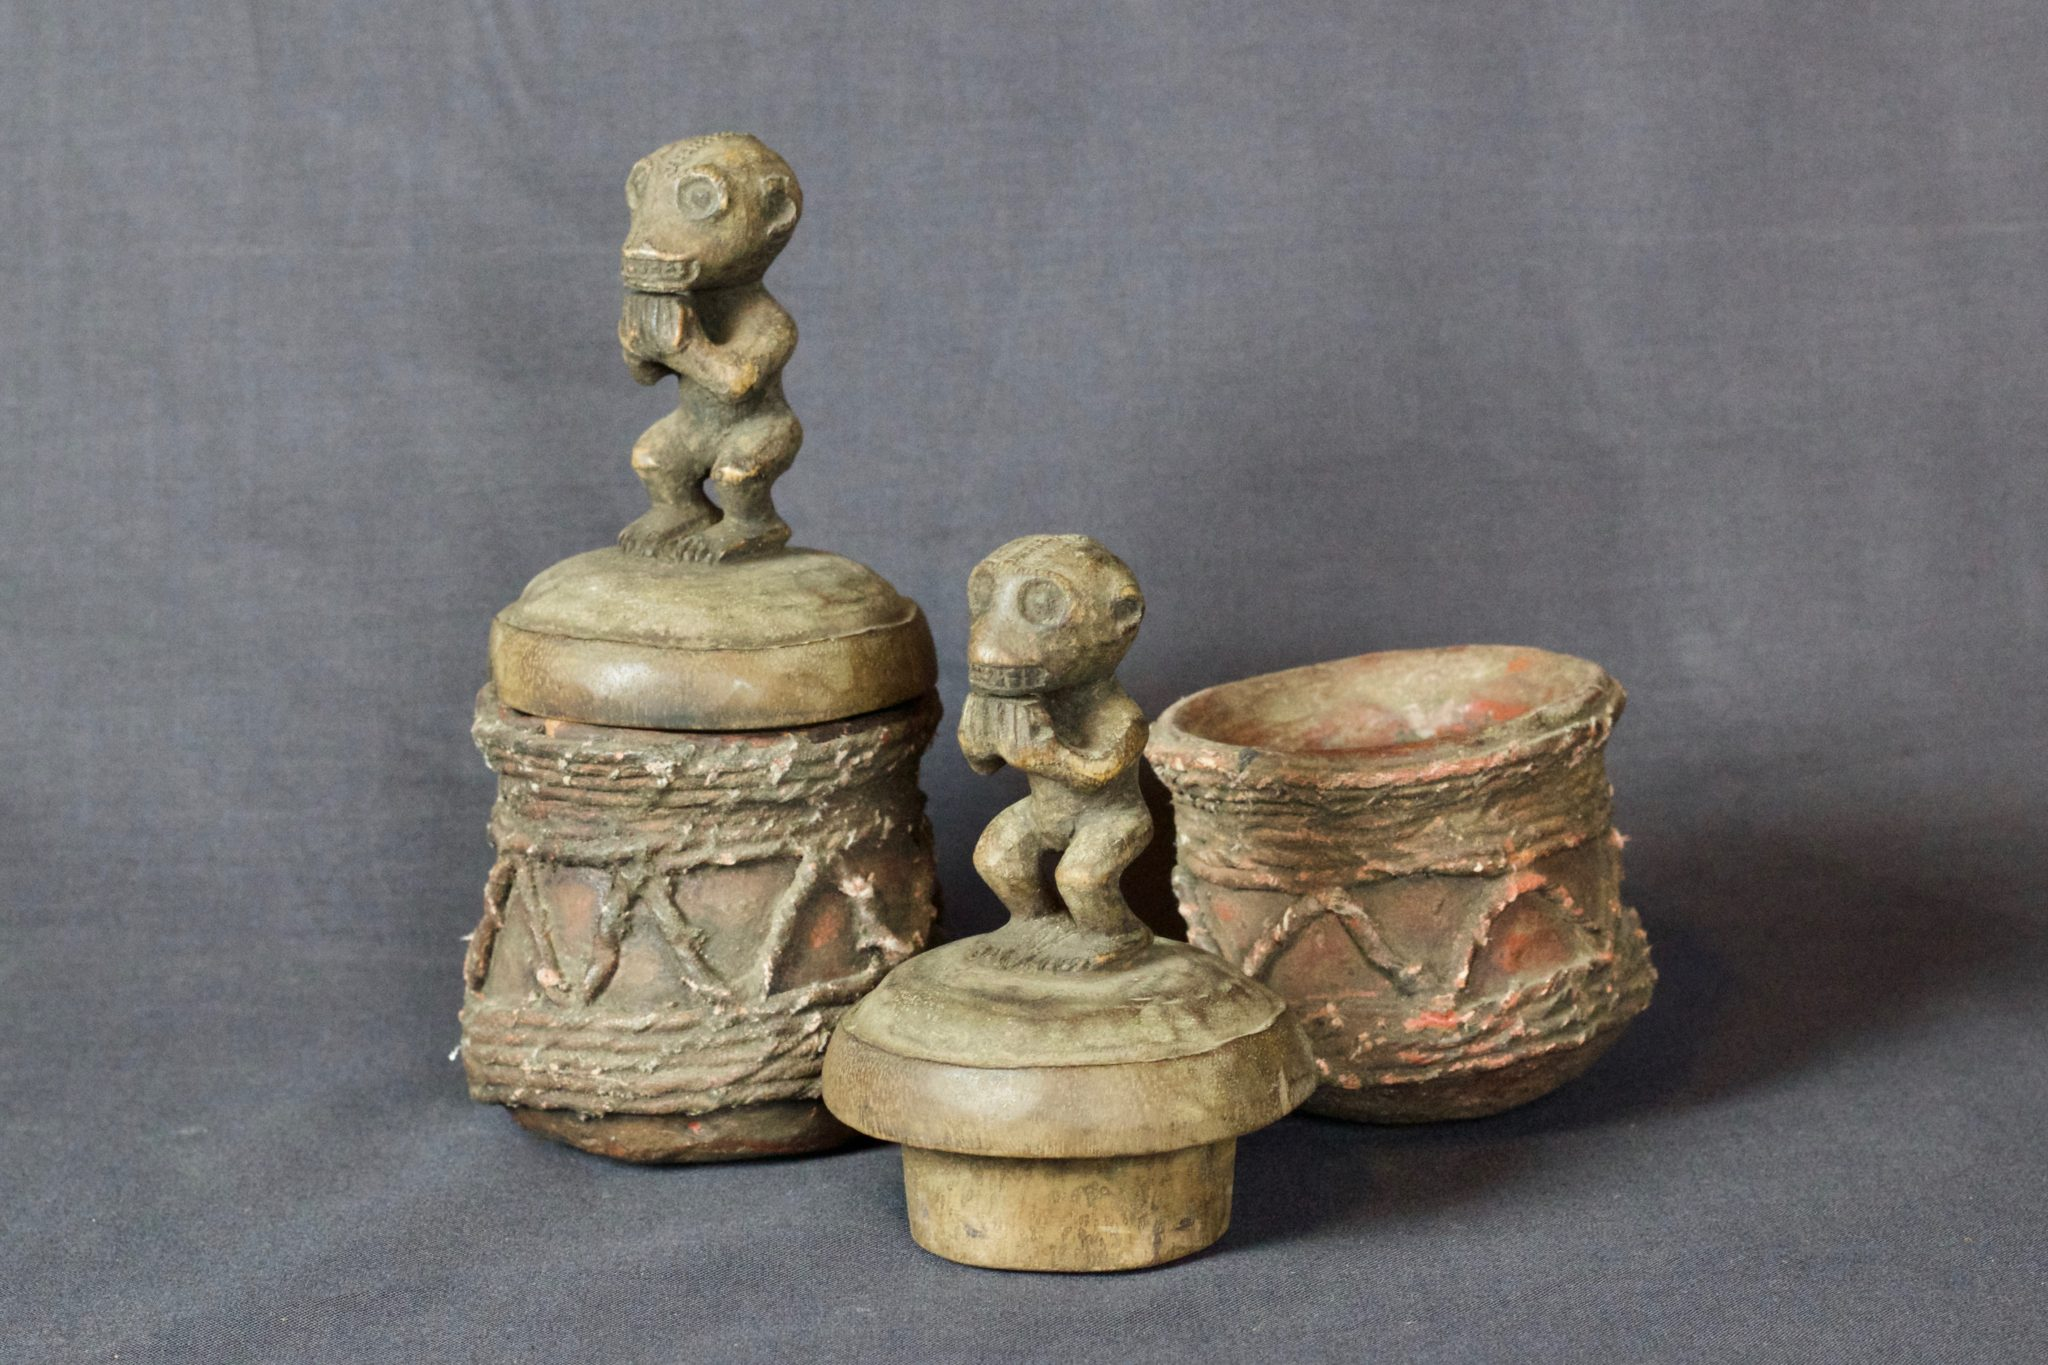 """Holy Water Containers, Lombok Island, Lesser Sunda Islands, Indonesia, Mid 20th c, Wood, ceramic, fiber, pigment. Shaman jar for holy water for purification rituals. Dimensions: (left - 6"""" x 3 ¼"""" x 3 ¼"""", Sold); (right - 6 ¼"""" x 3 ¼"""" x 3 ¼"""", sold)"""